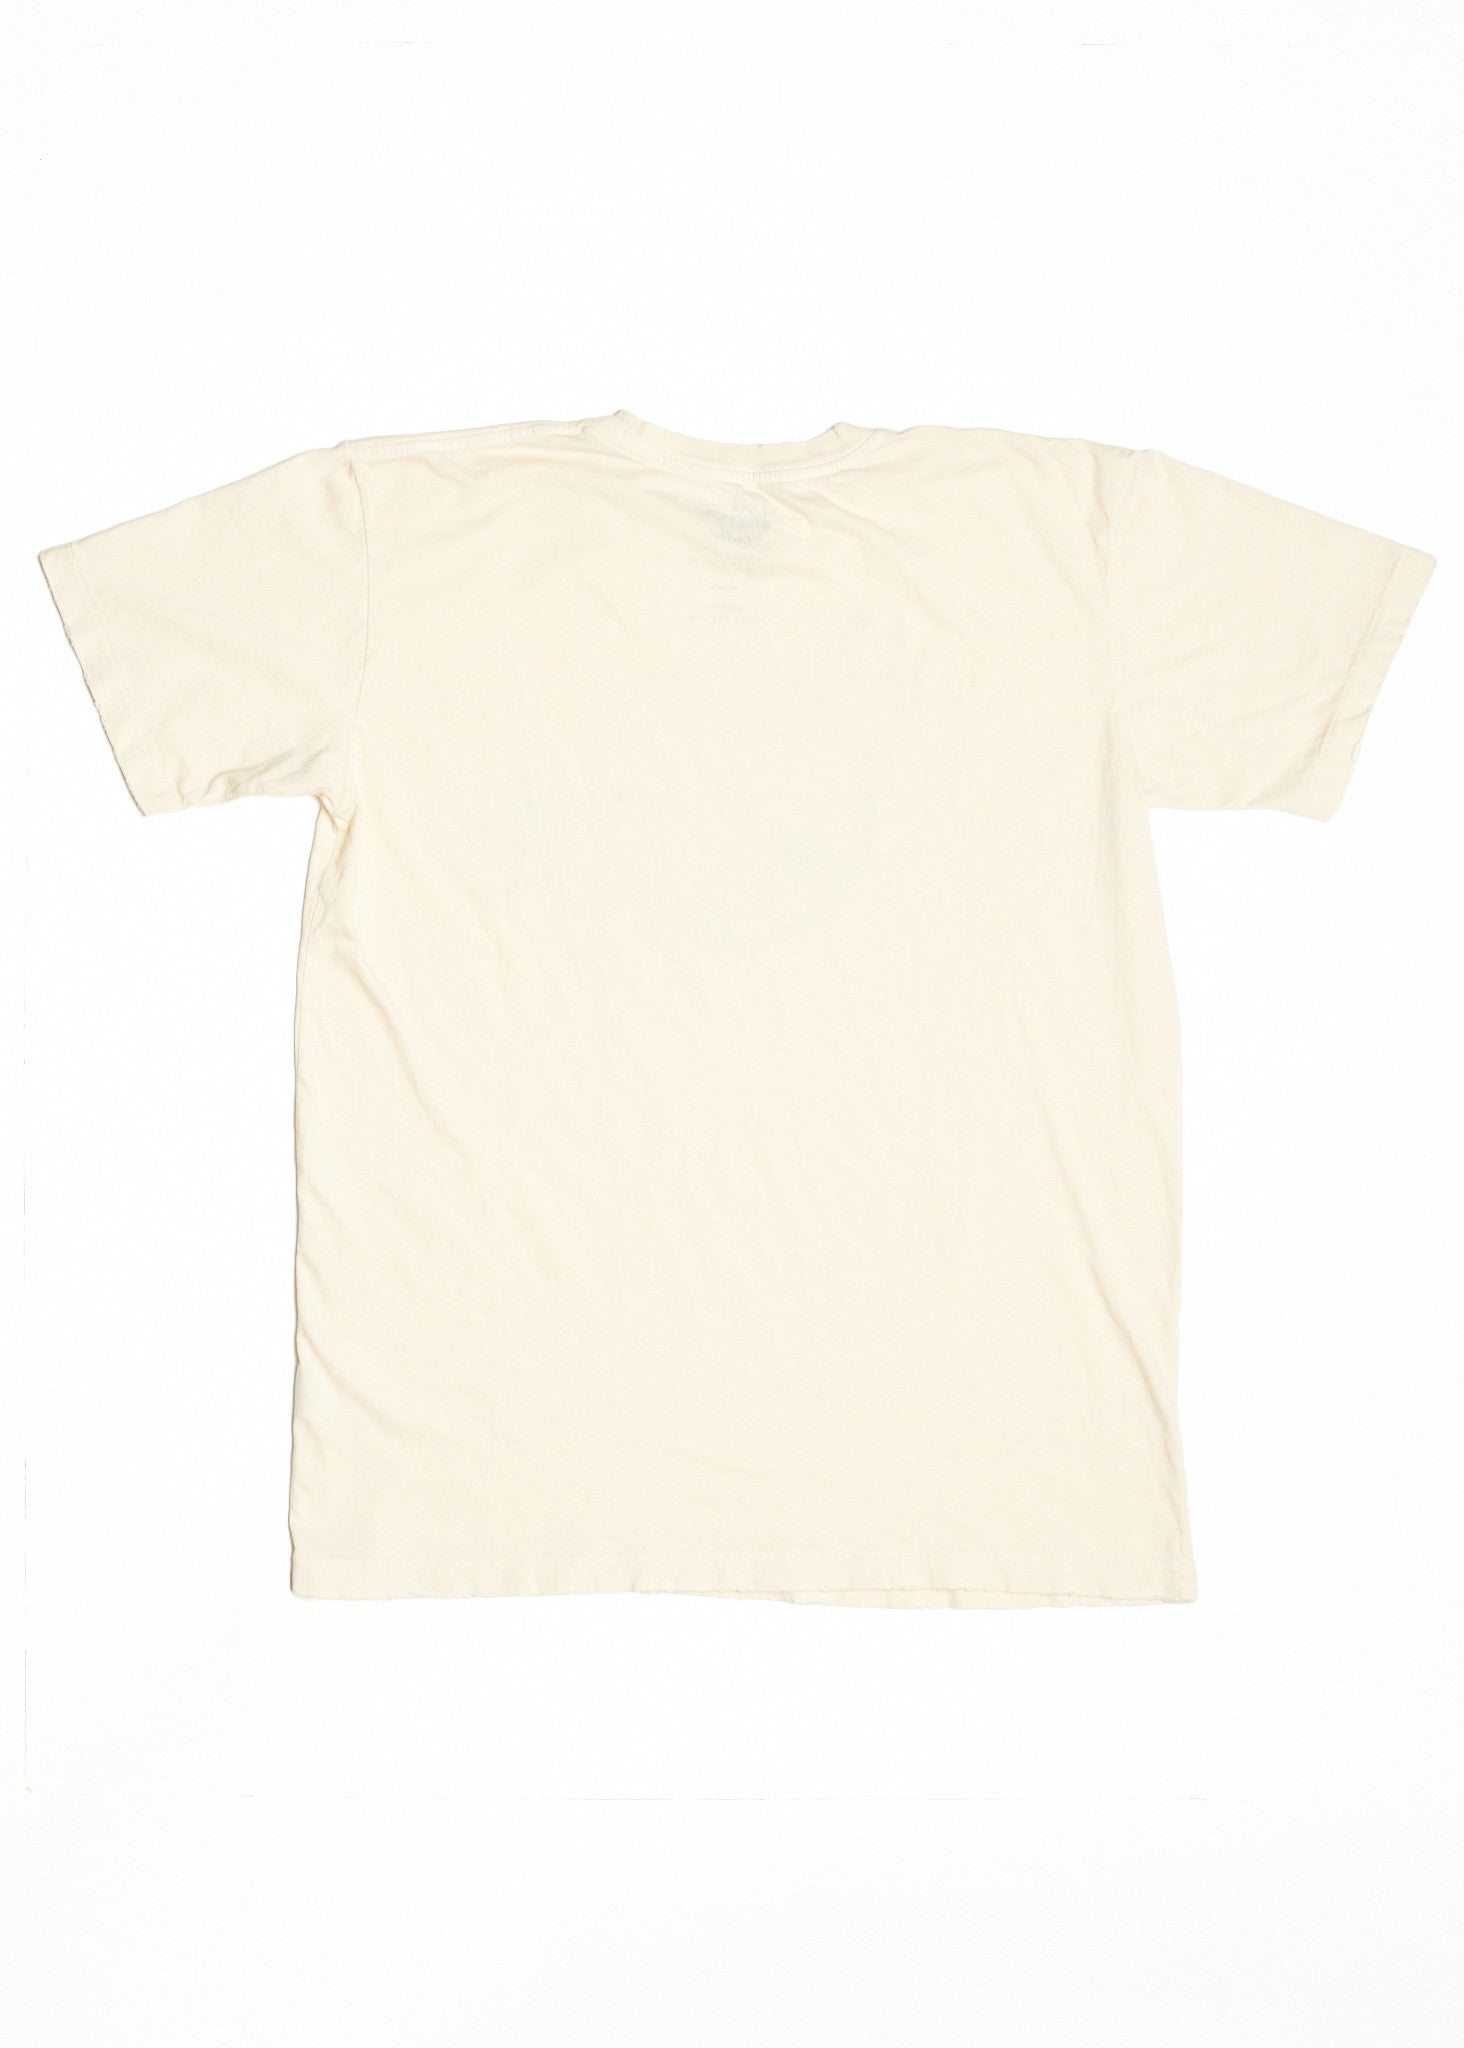 Pancho and Lefty Men's Crew - Dirty White